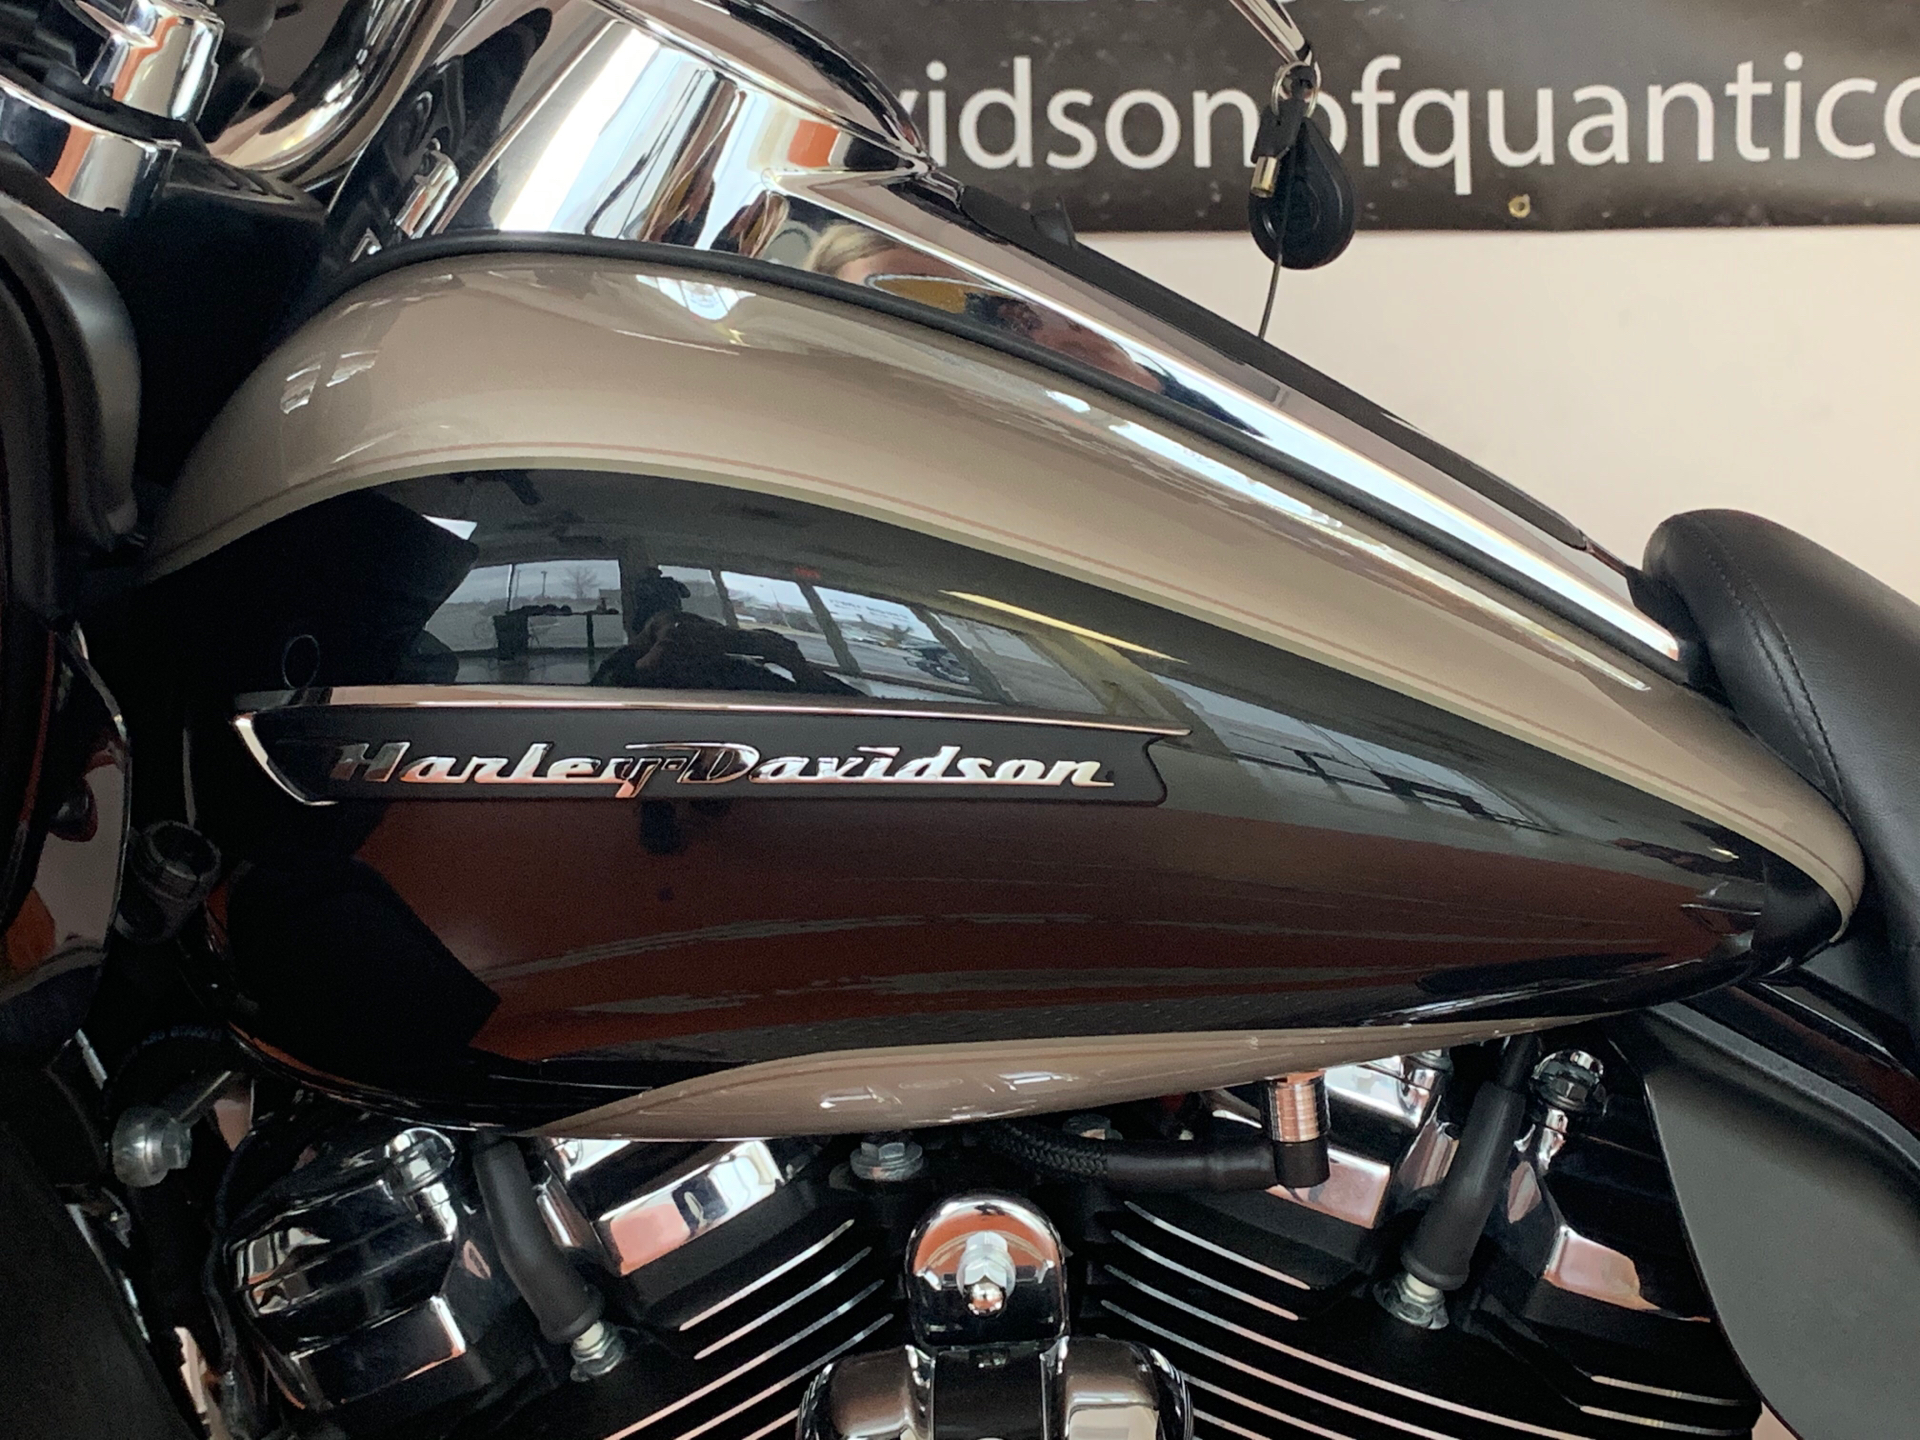 2018 Harley-Davidson Road Glide® Ultra in Dumfries, Virginia - Photo 17